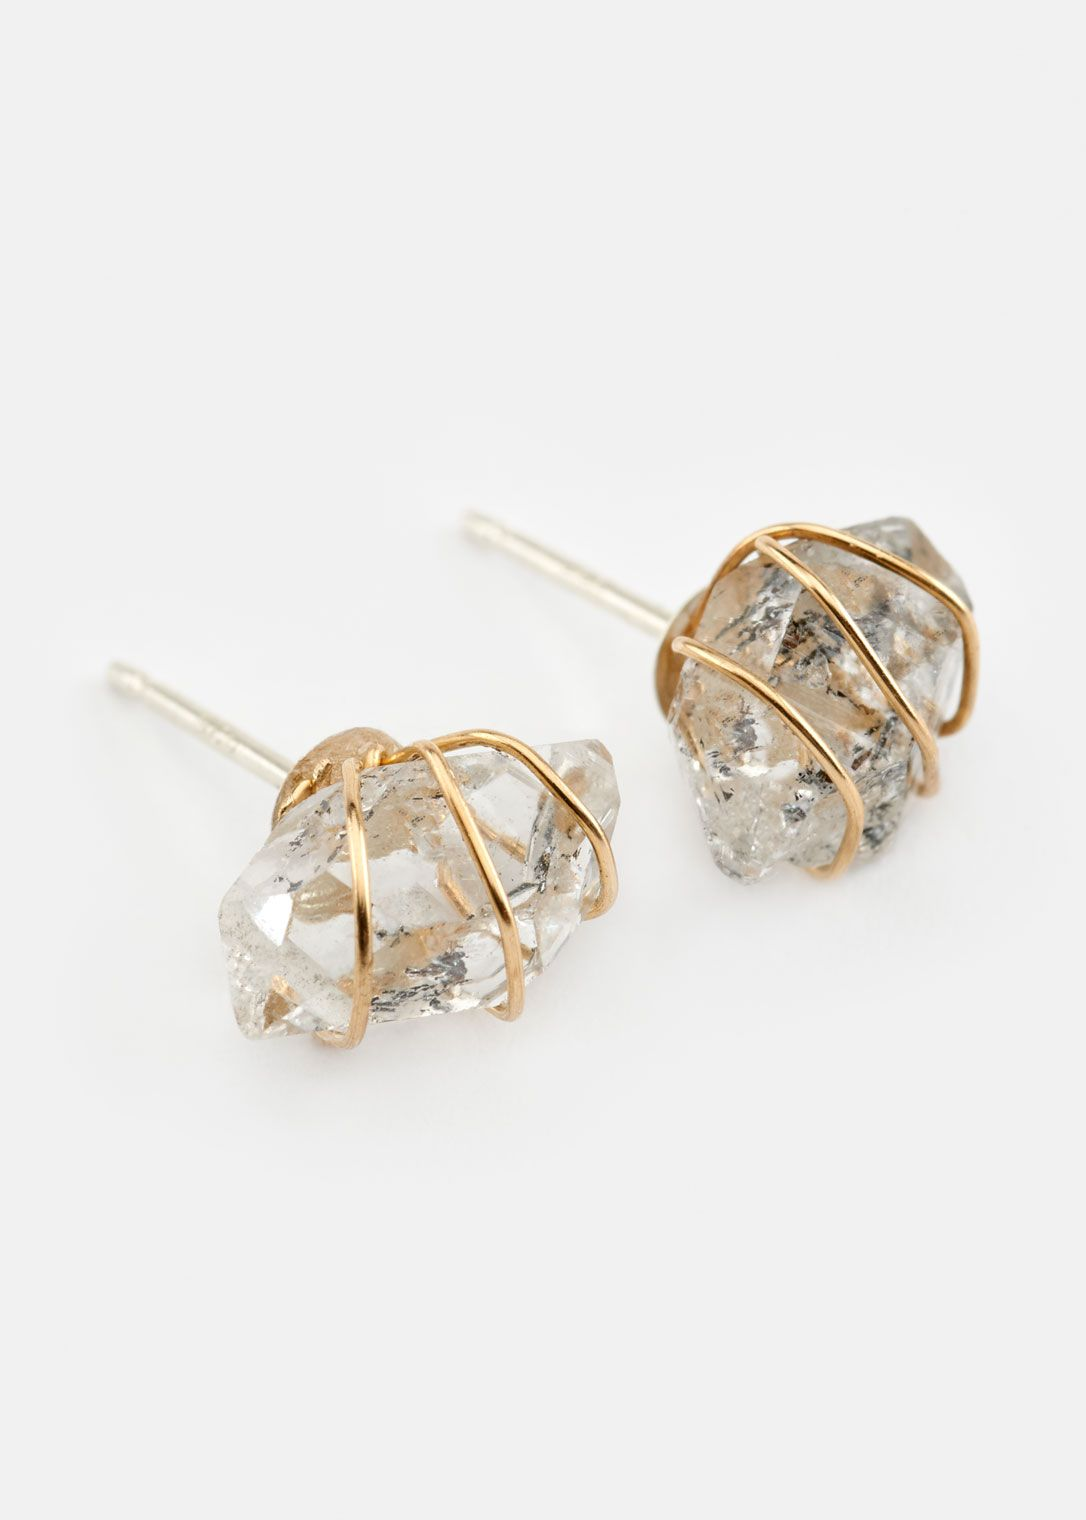 tout neuf haute couture acheter populaire Pin by Louisa Dunn on Bejewled | Jewelry, Herkimer diamond ...